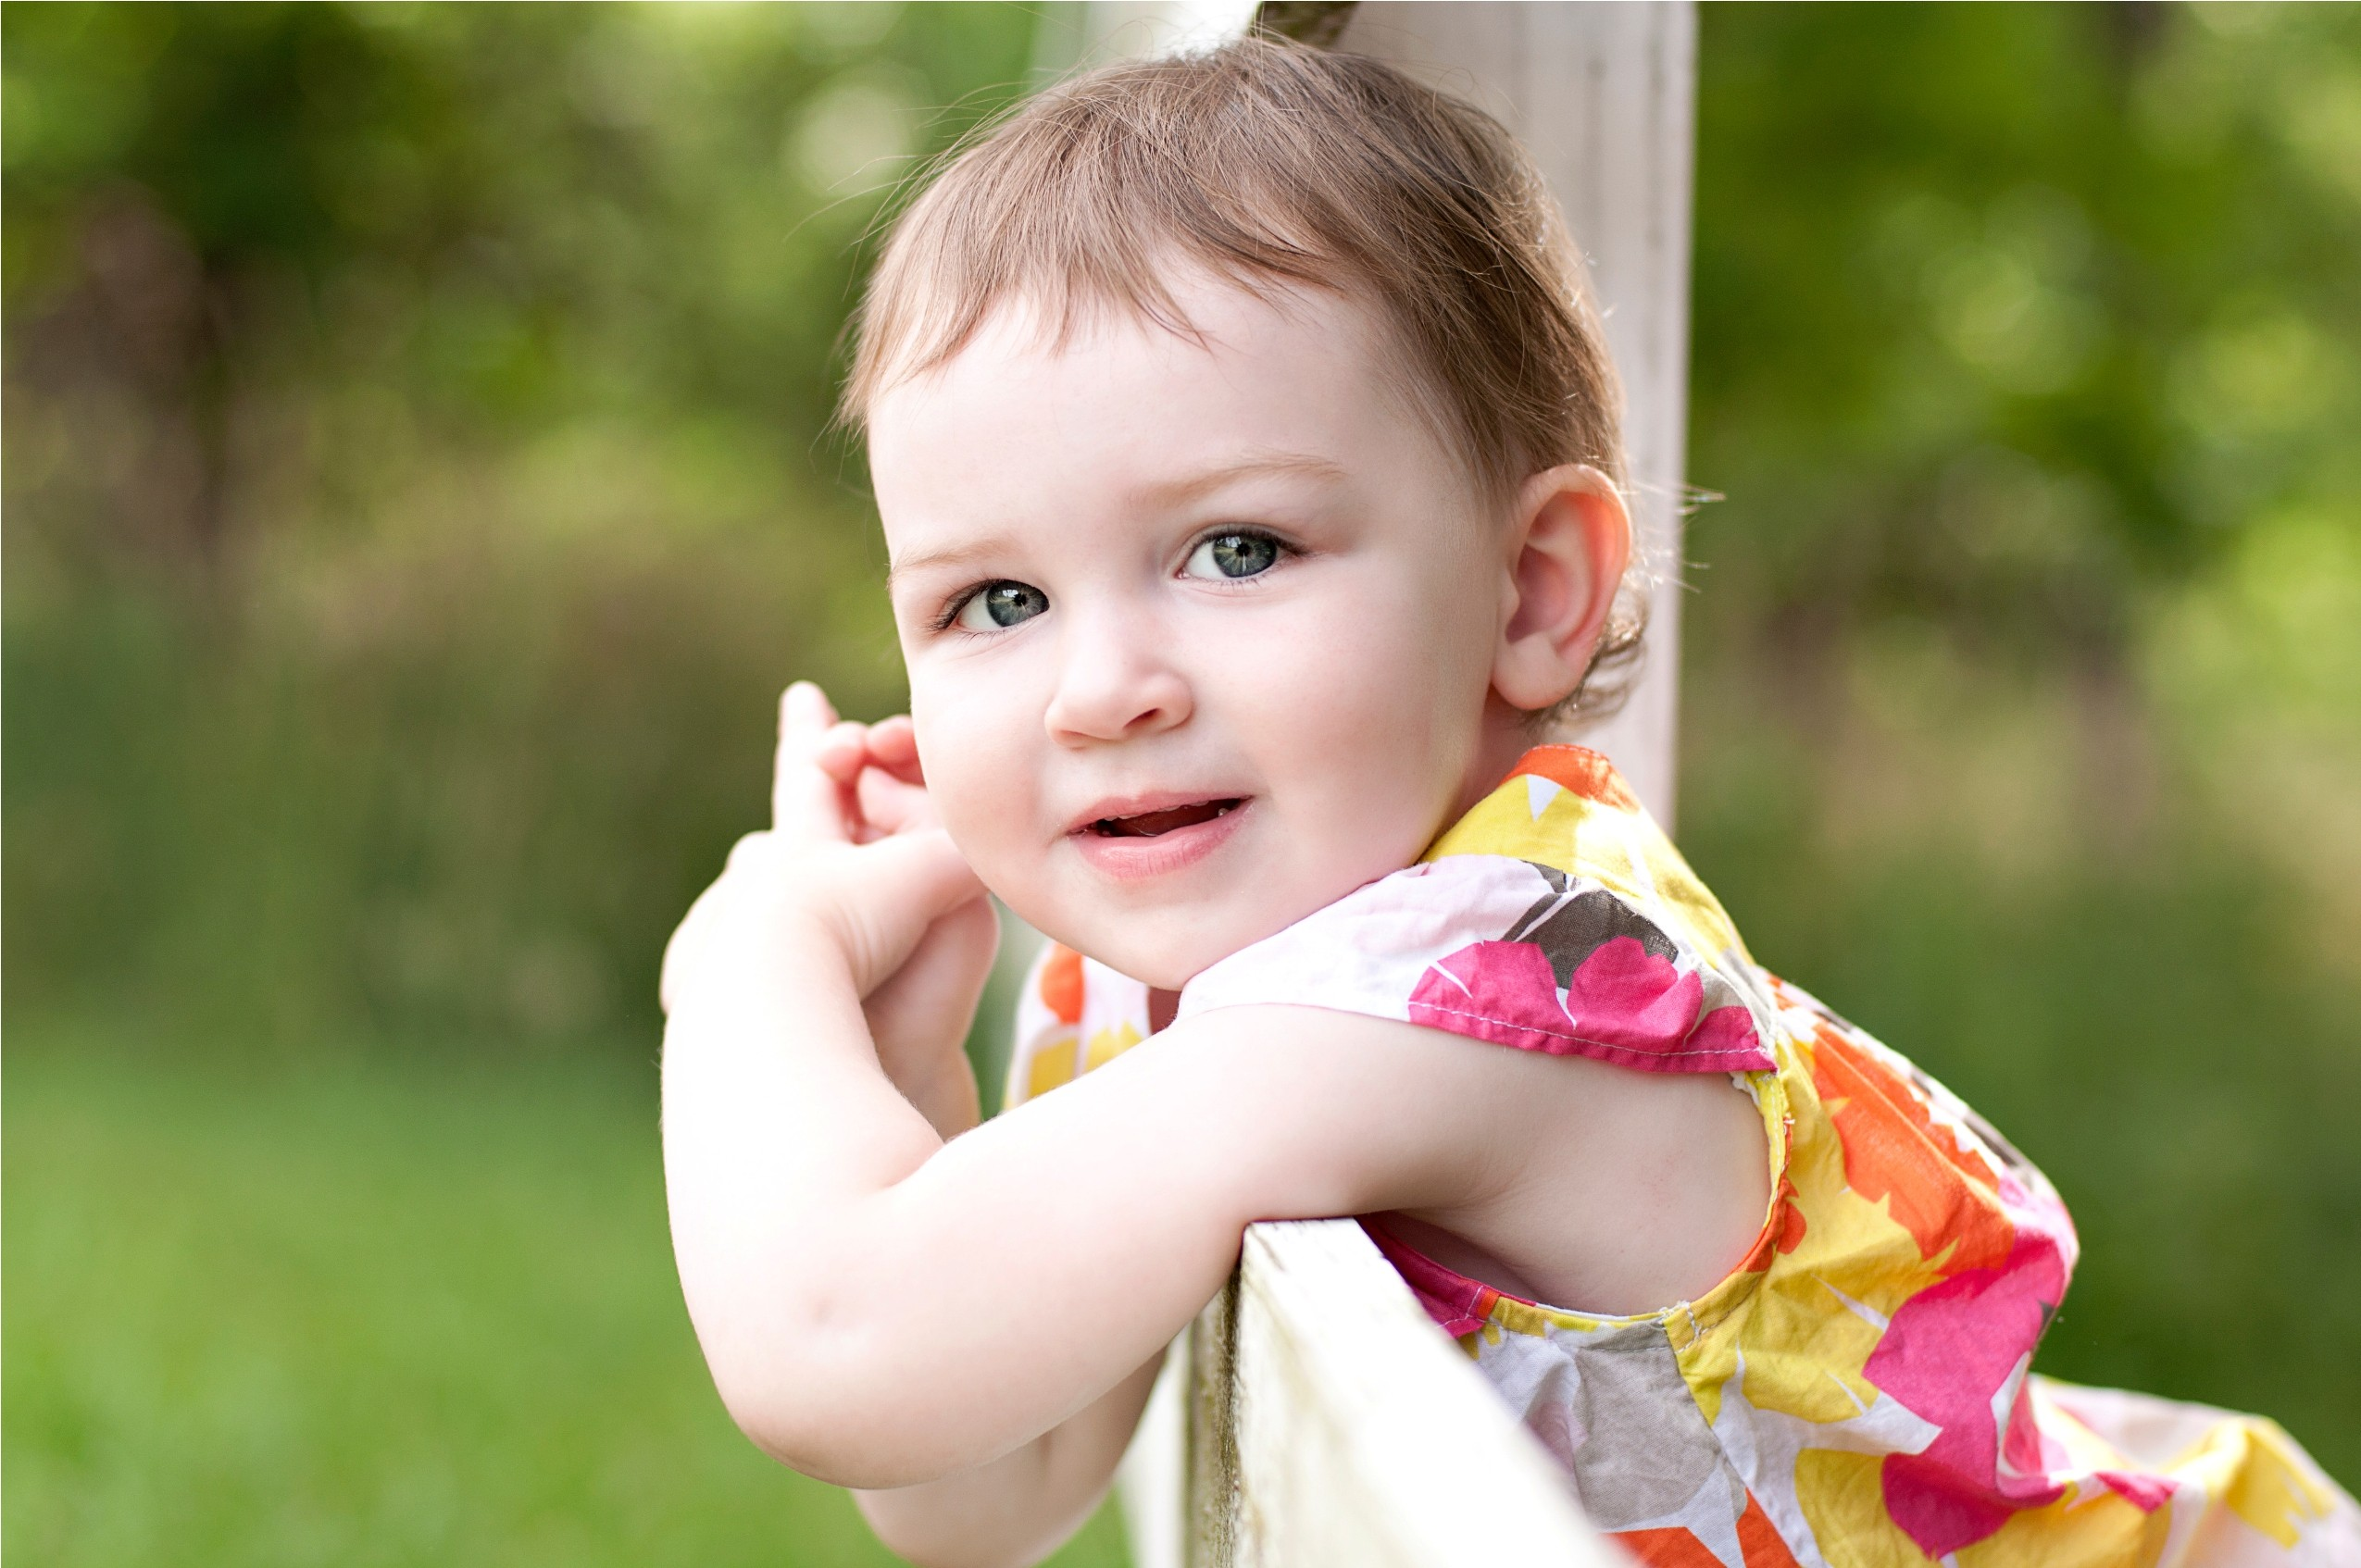 cute baby images free download